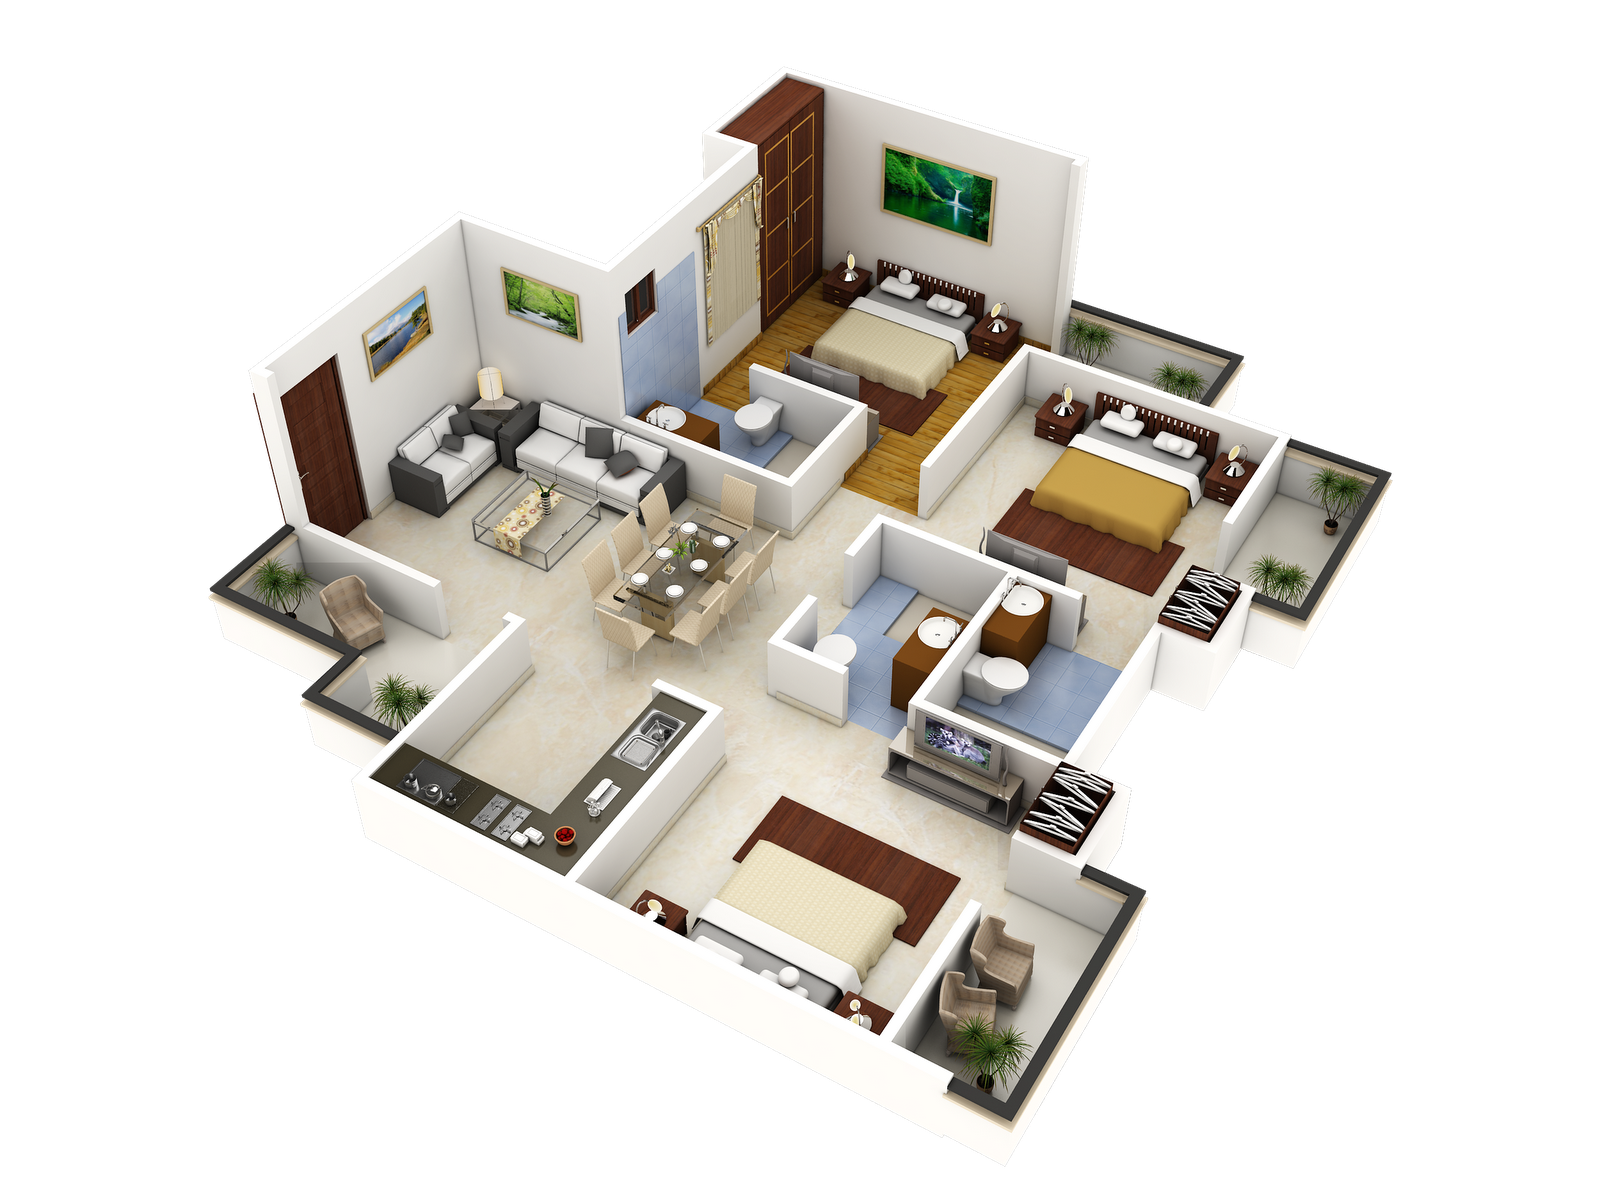 Floor Plan 3d Model Free Download